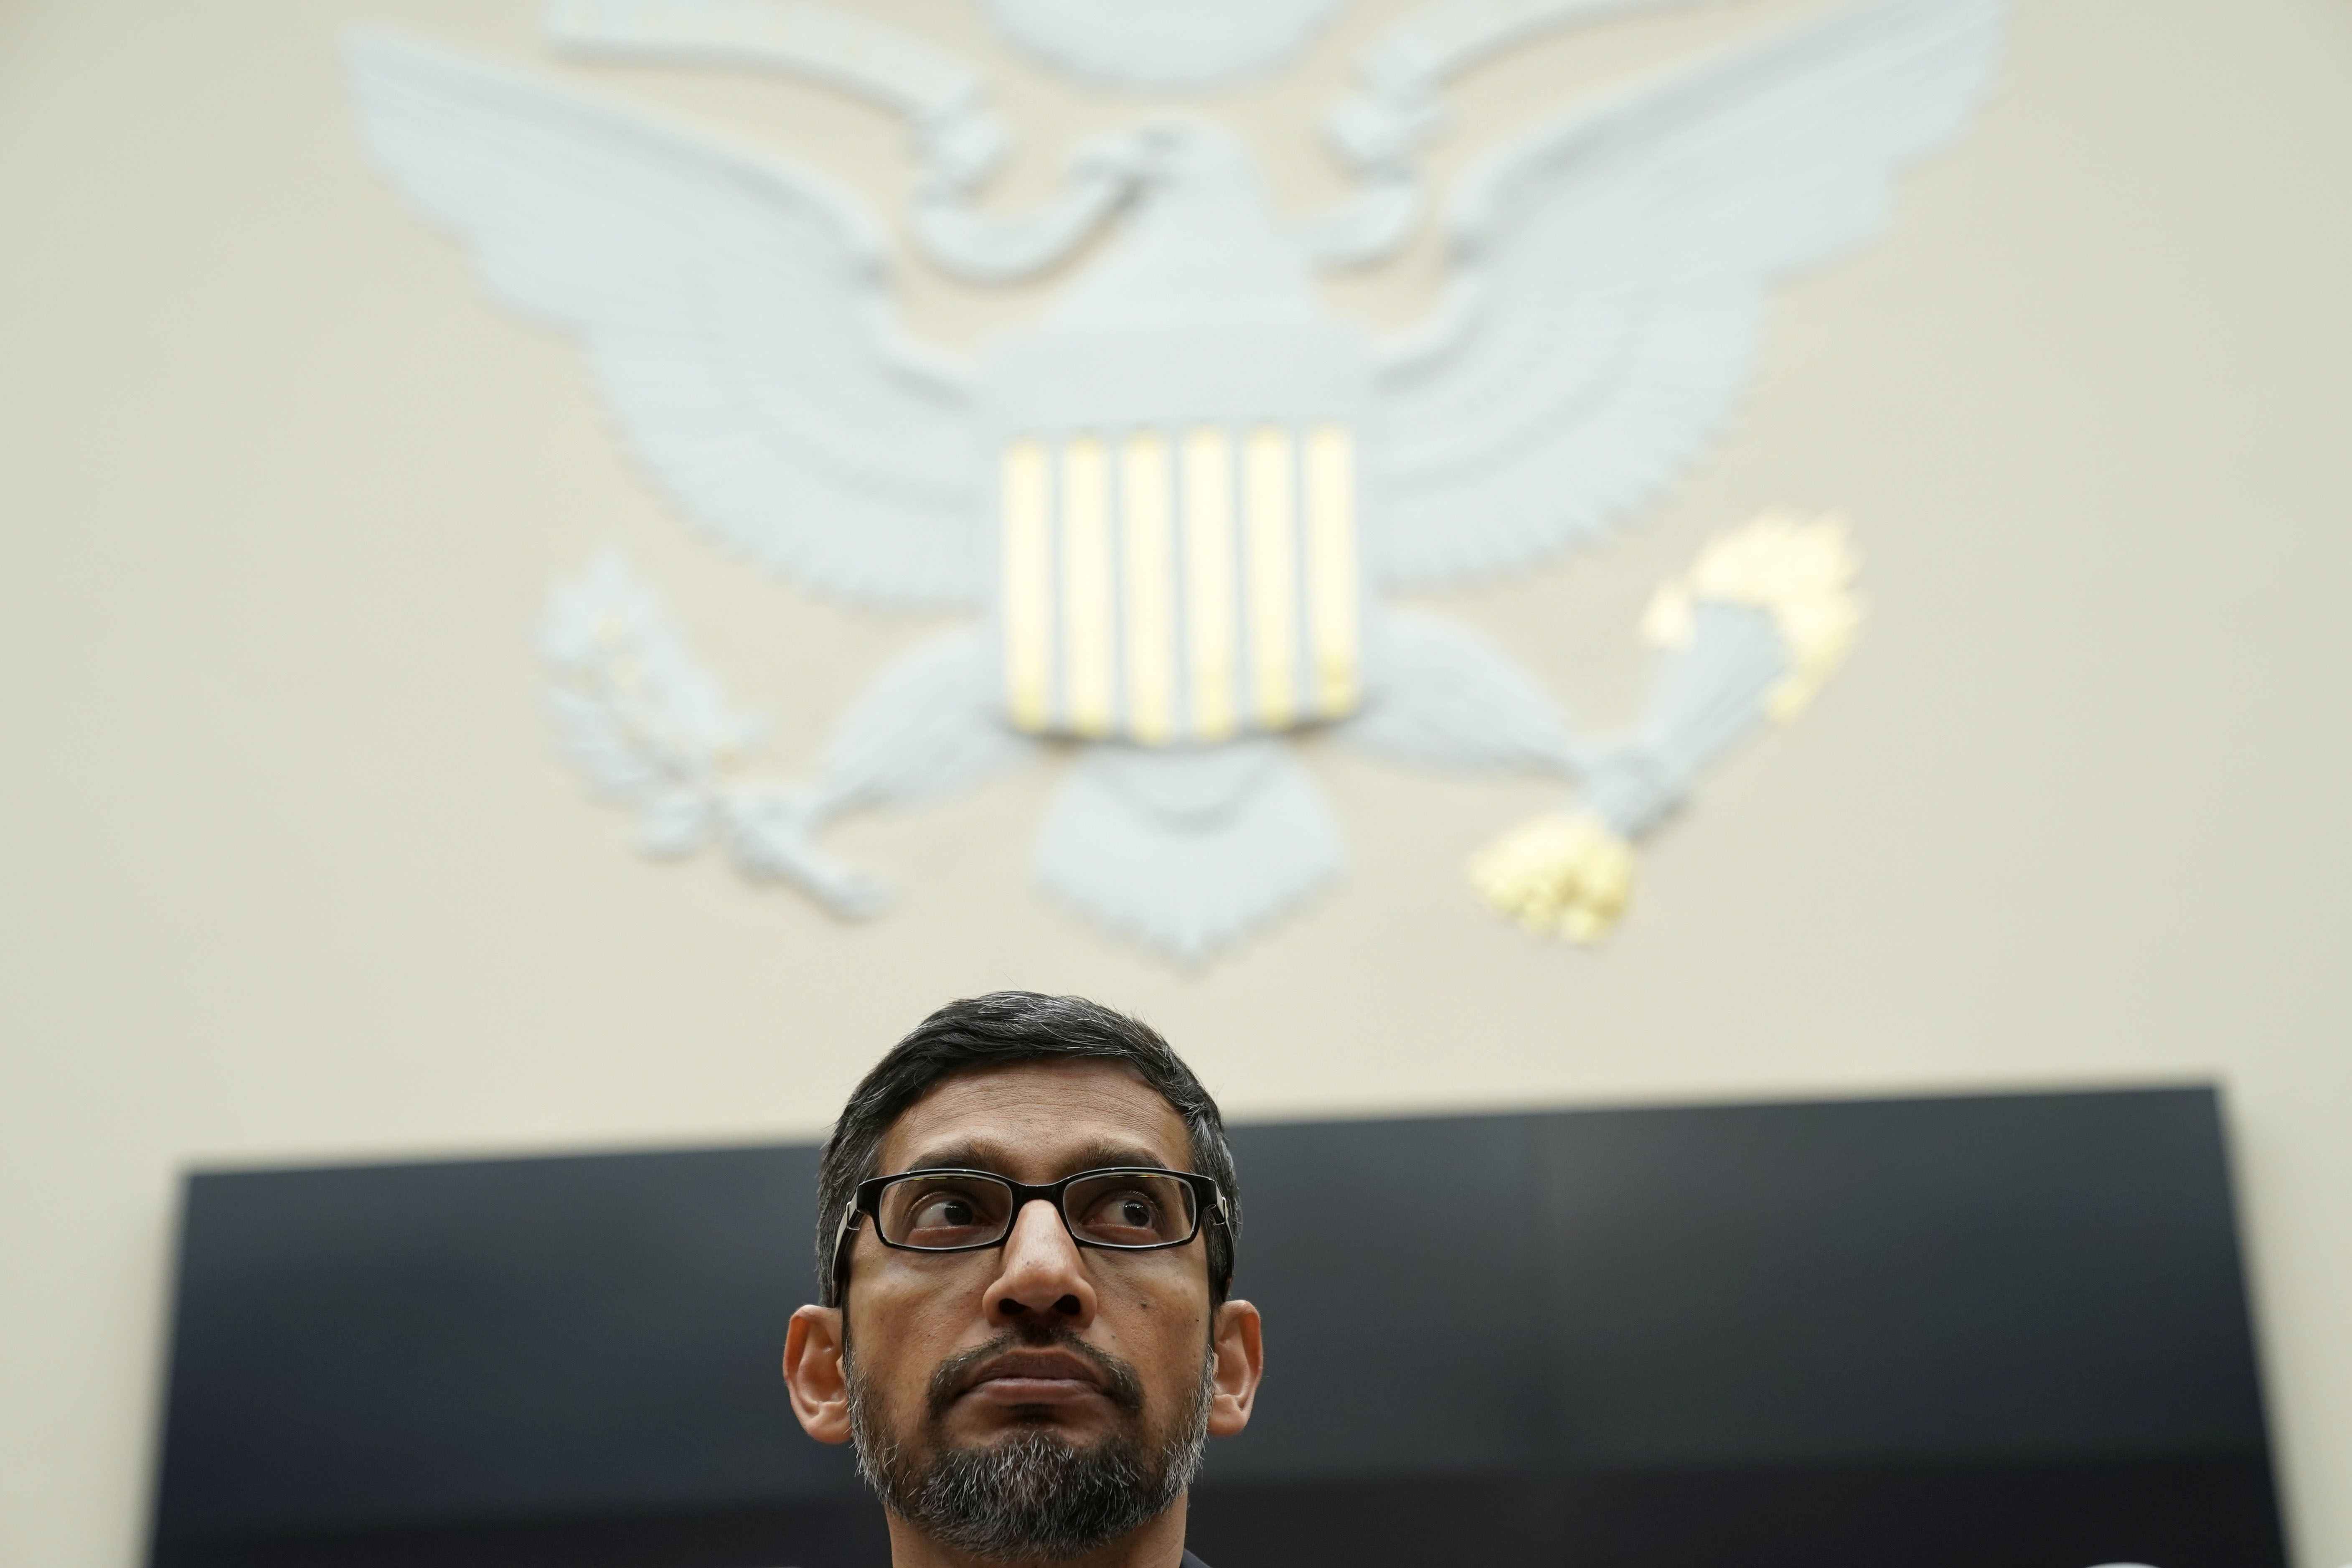 "Google CEO Sundar Pichai testifies before the House Judiciary Committee at the Rayburn House Office Building on December 11, 2018 in Washington, DC. The committee held a hearing on 'Transparency & Accountability: Examining Google and its Data Collection, Use and Filtering Practices."" (Photo by Alex Wong/Getty Images)"